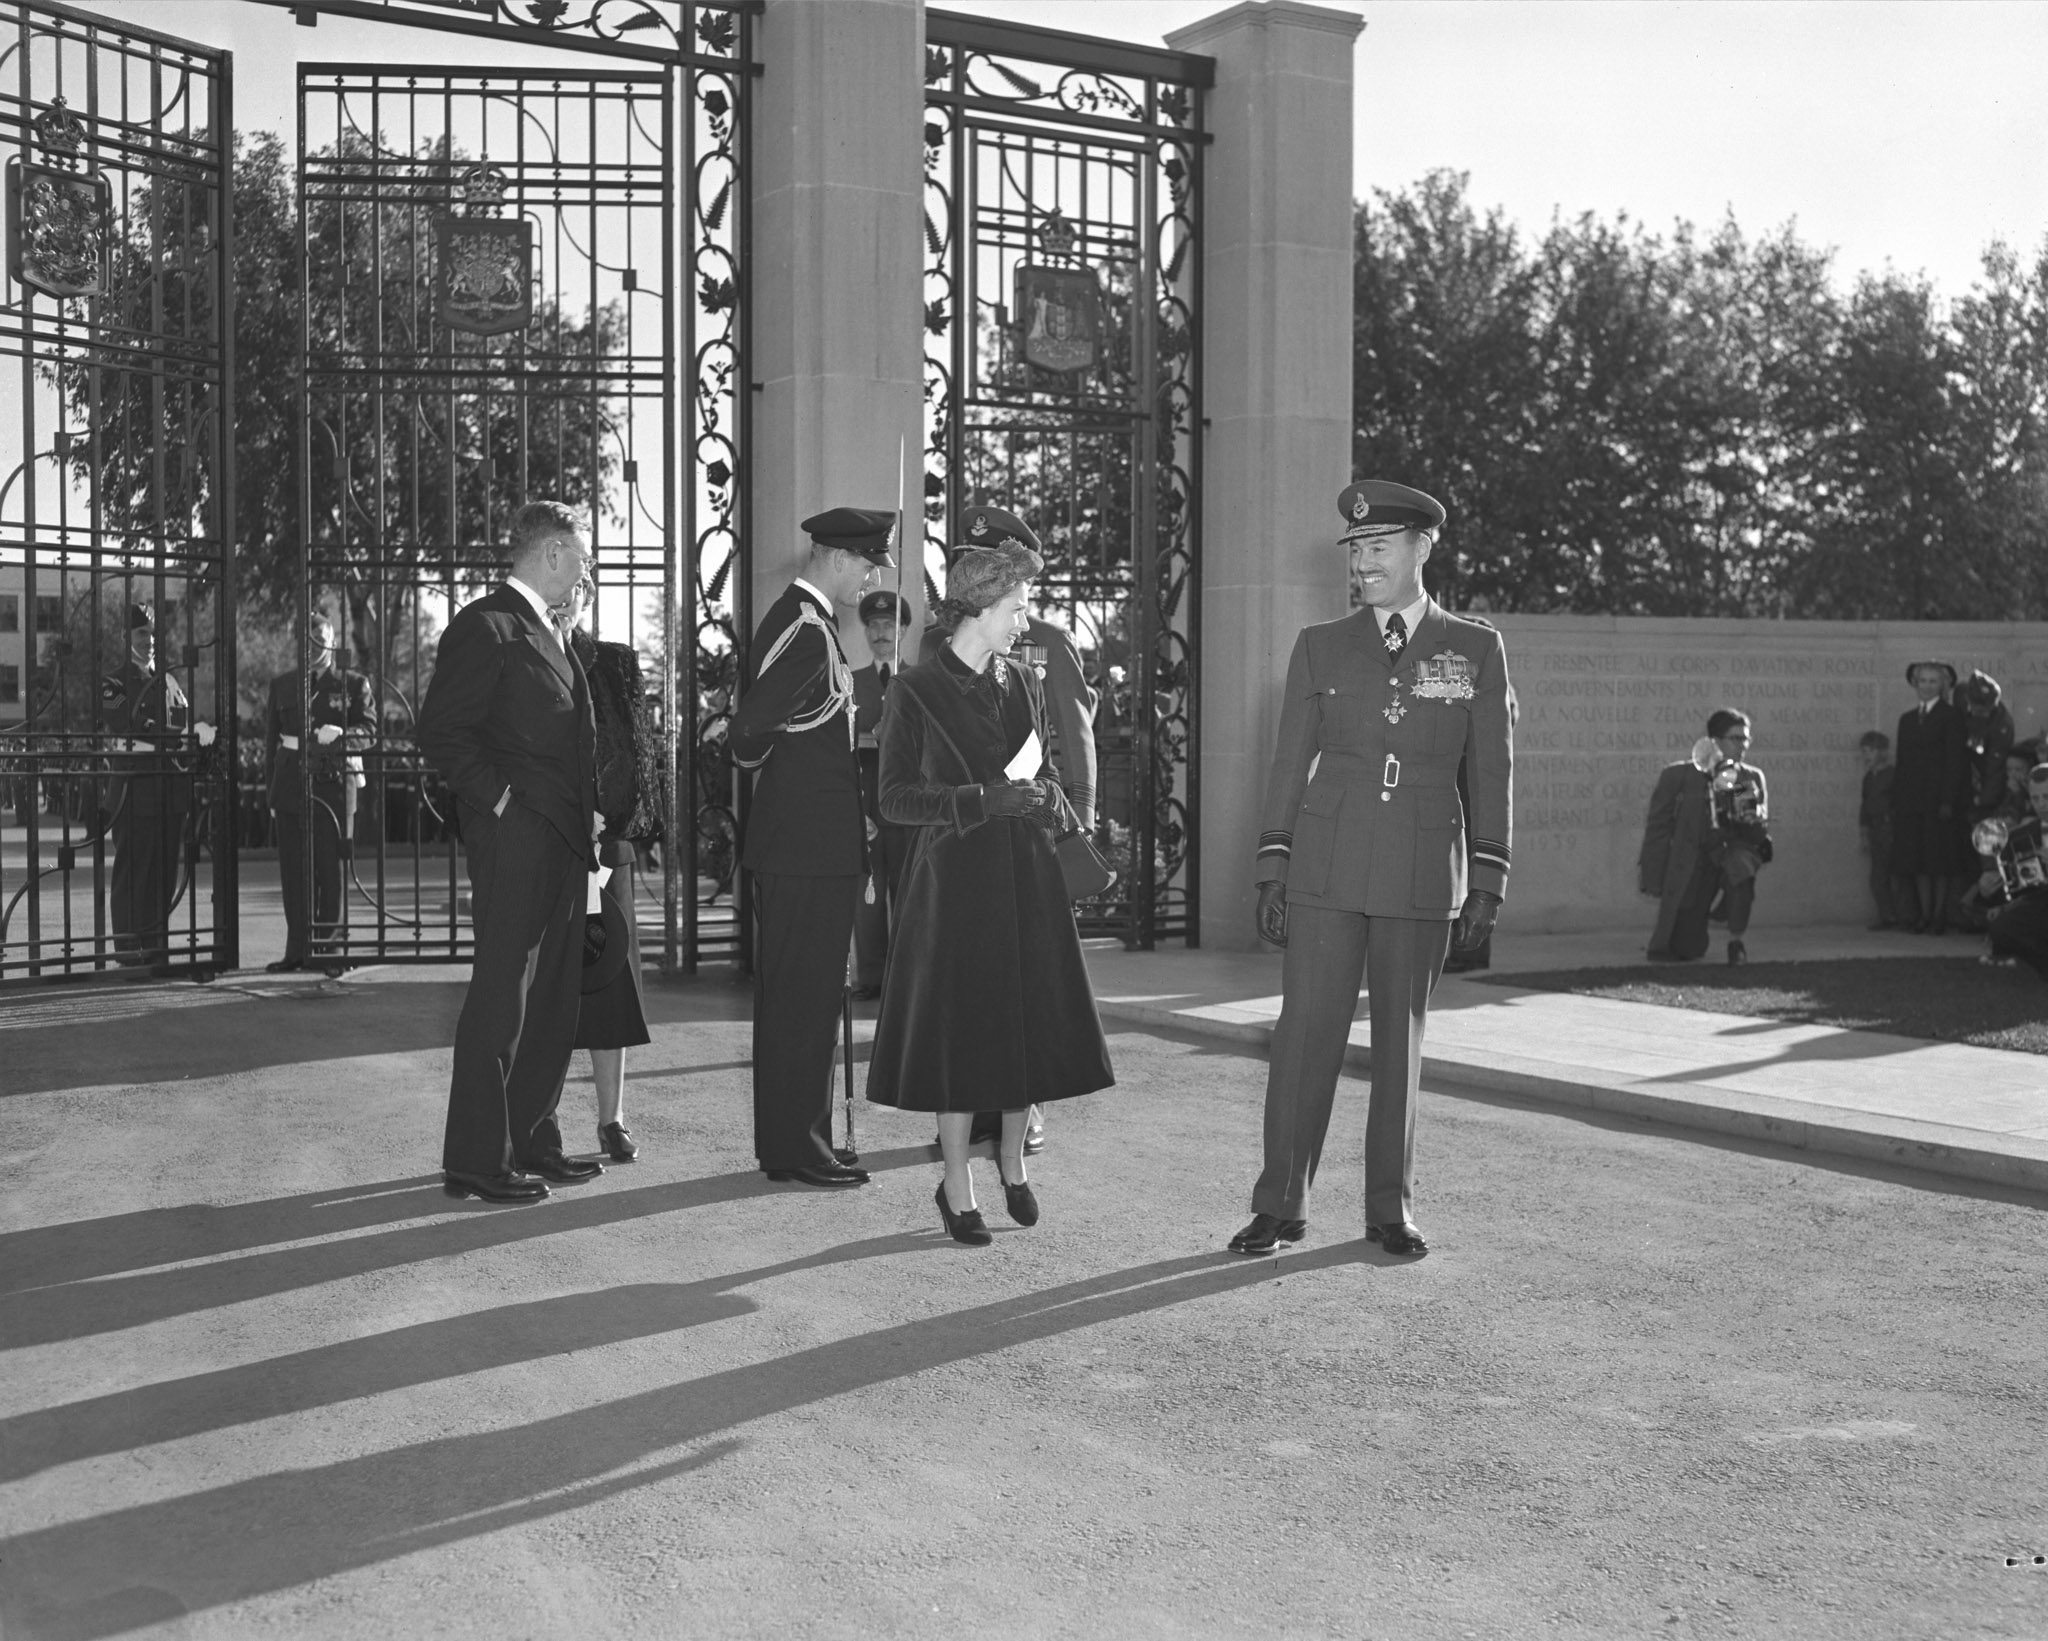 Le vice-maréchal de l'Air Charles Roy Slemon, commandant de l'aviation du Commandement de l'instruction, s'entretient avec la princesse Elizabeth à l'arrivée du couple royal à Trenton. Le commandant de défilé, le colonel d'aviation G.P. Dunlop (partiellement caché) accompagne le duc d'Édimbourg, sous les regards du ministre de la Défense, Brooke Claxton, et de son épouse, Helen Claxton. PHOTO: Archives du MDN, PL-52814